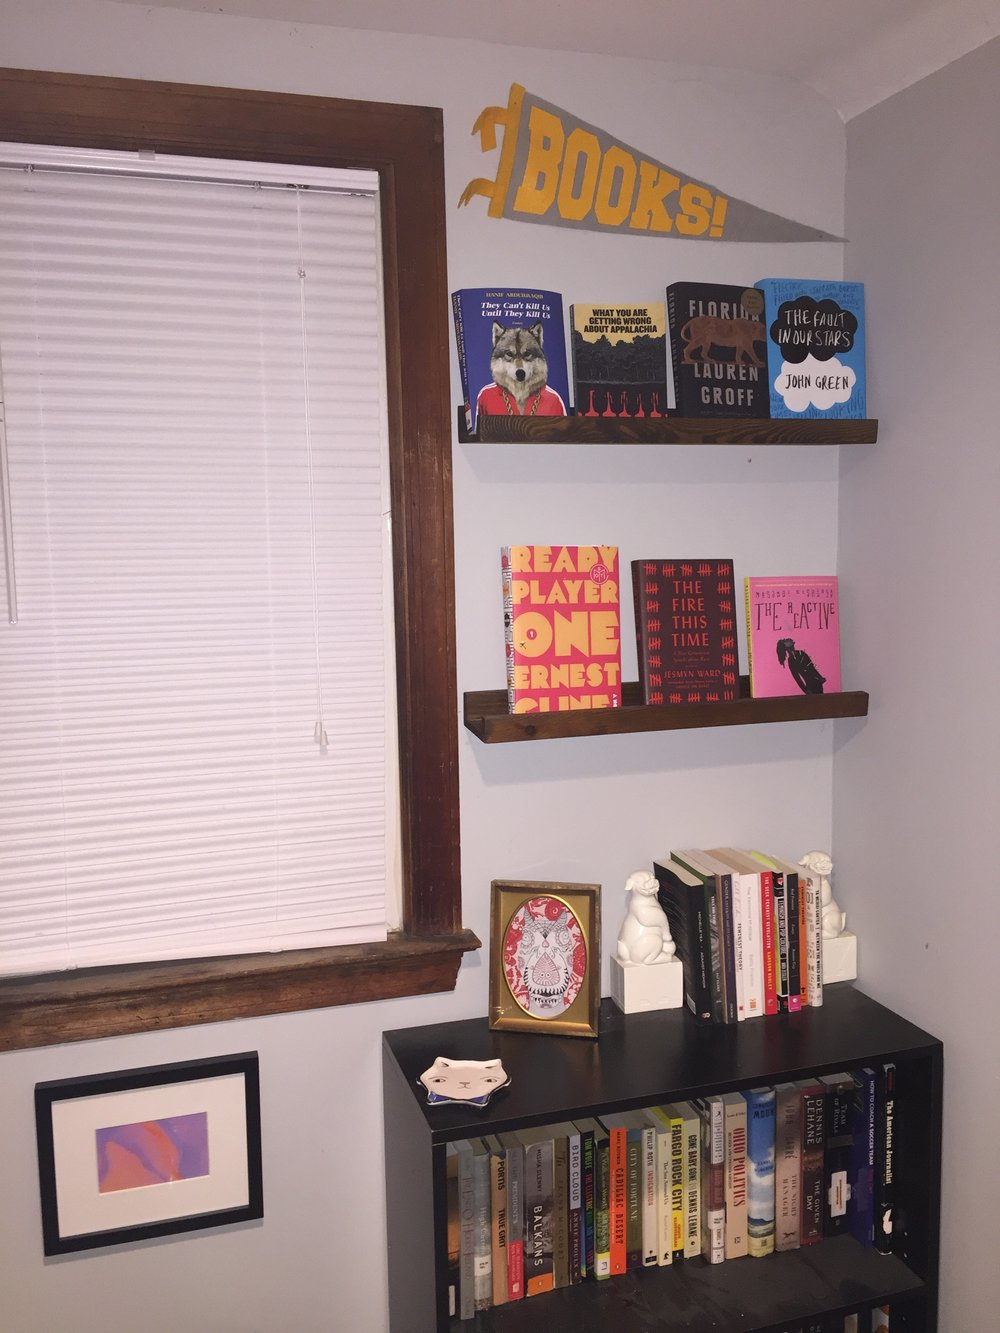 "[image description: a wall with a window, a small black bookshelf, and two display shelves with books facing outward. There are also two framed pieces of abstract art and a small triangular flag that says ""books.""]"